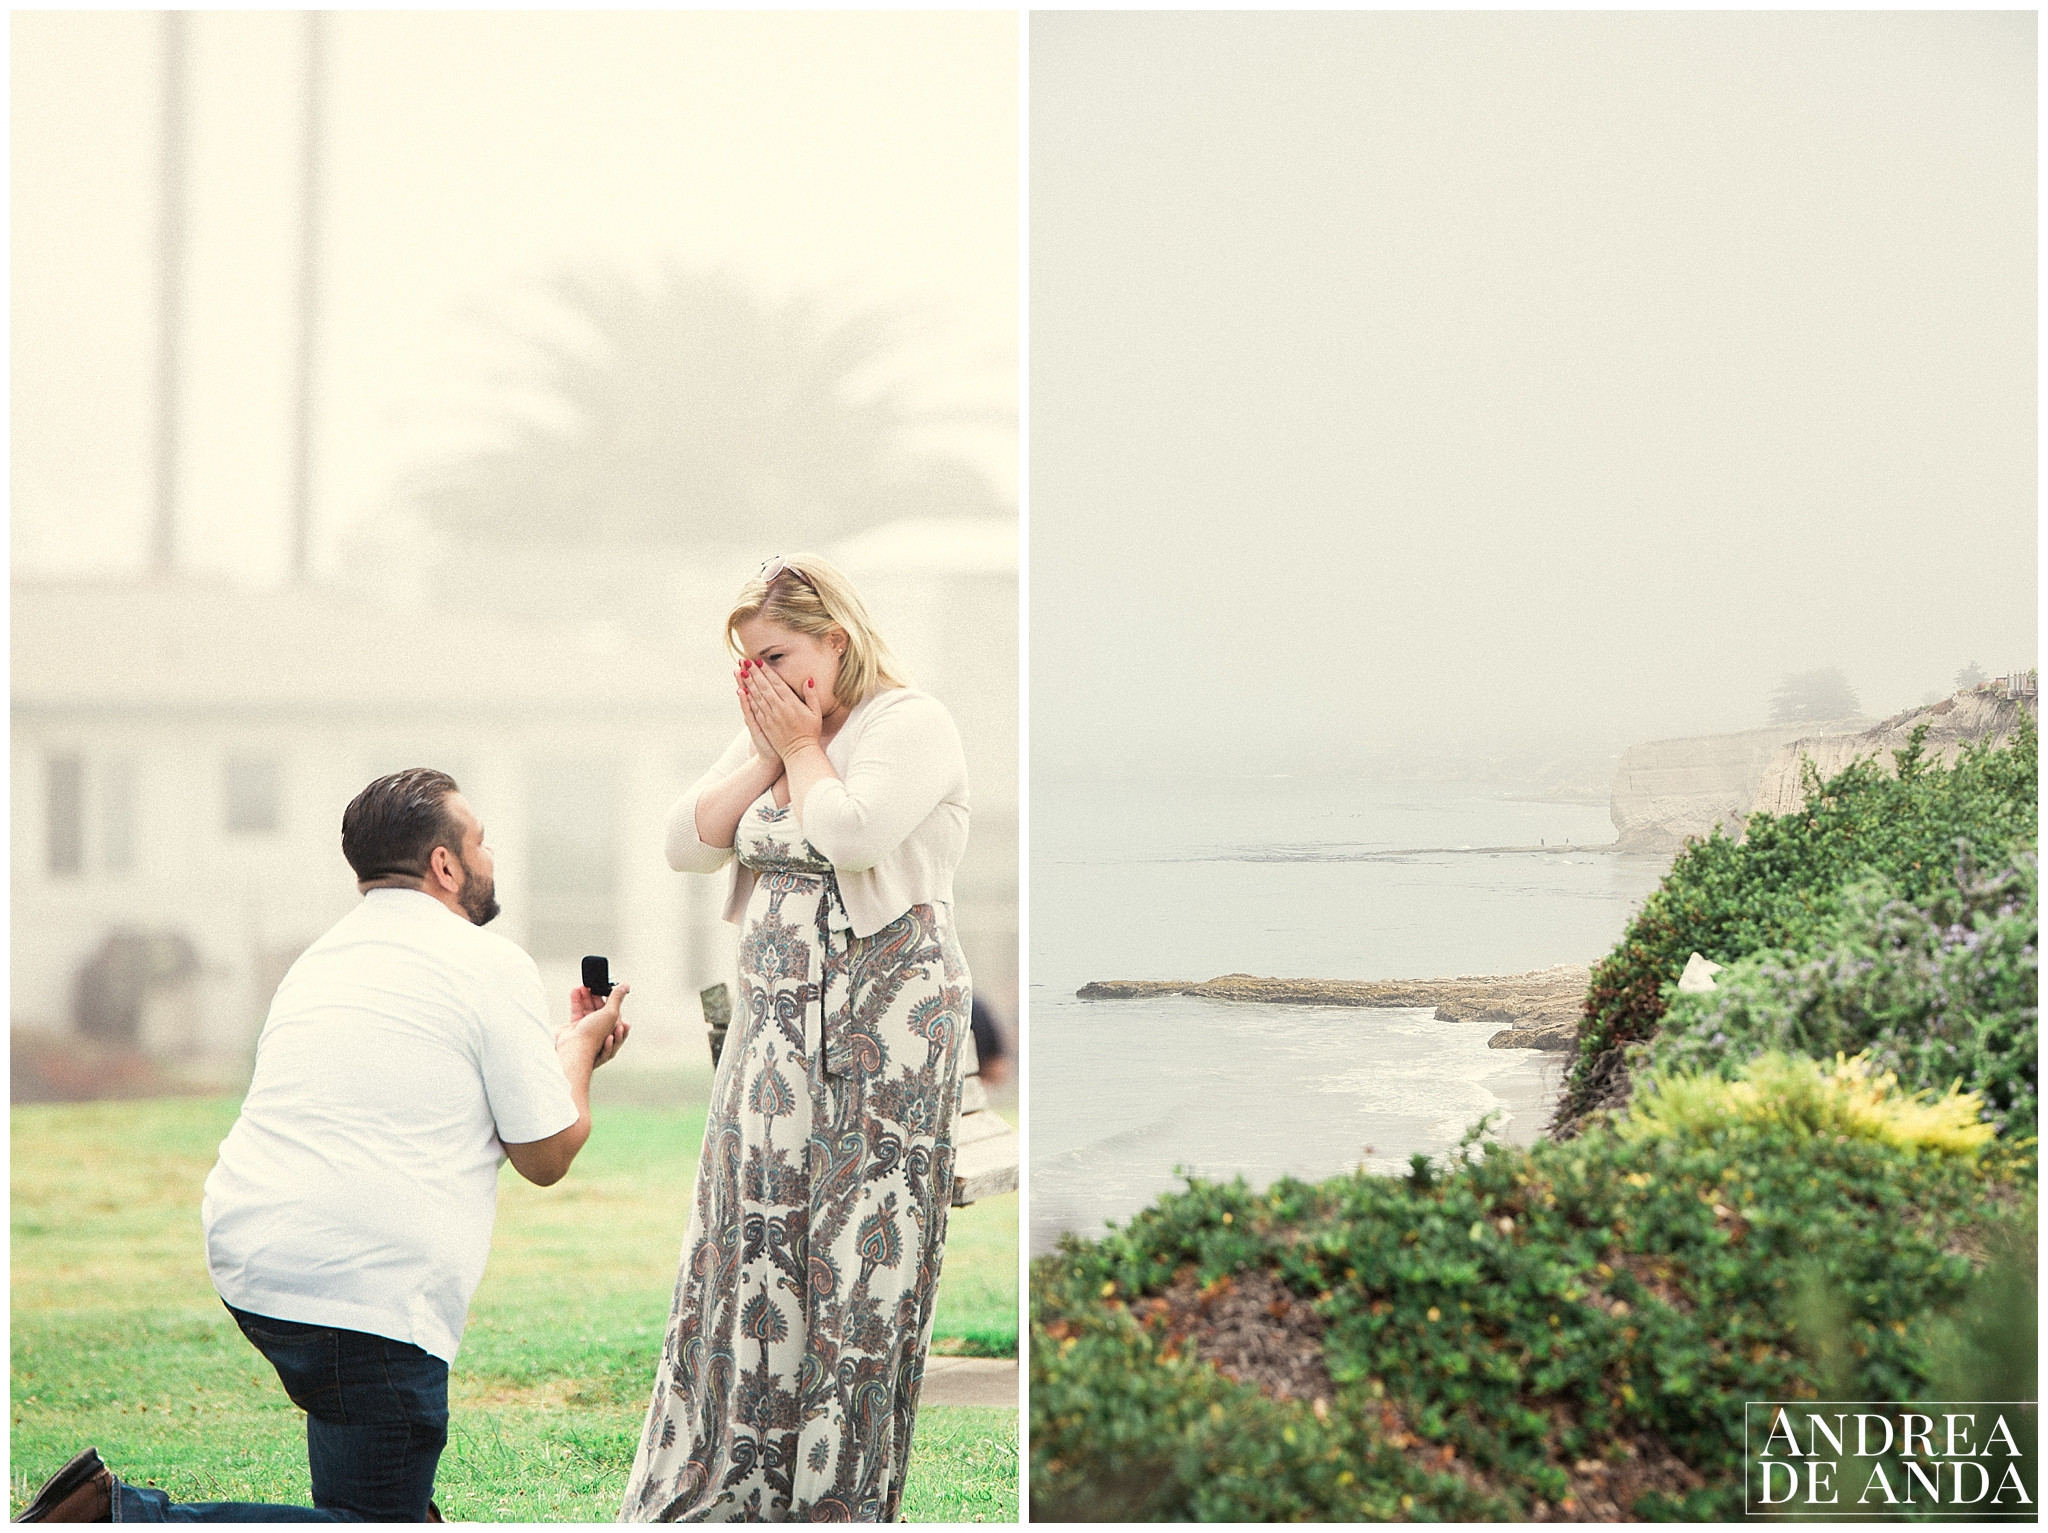 Pismo Beach engagement photography_Andrea de Anda Photography__0004.jpg